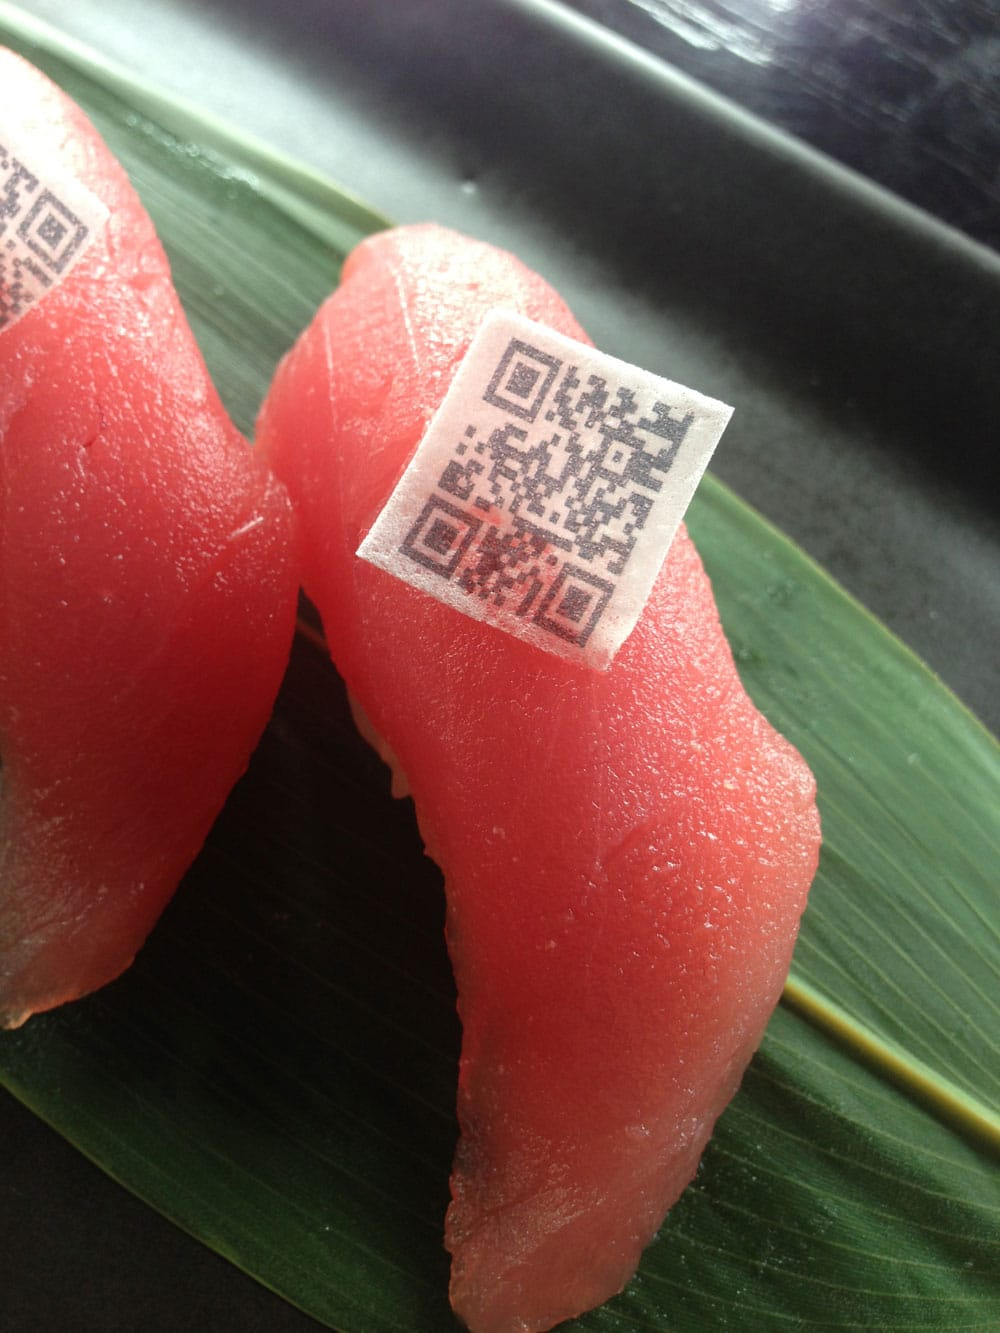 Interactive Food: High Tech Sushi With Edible QR Codes On Top